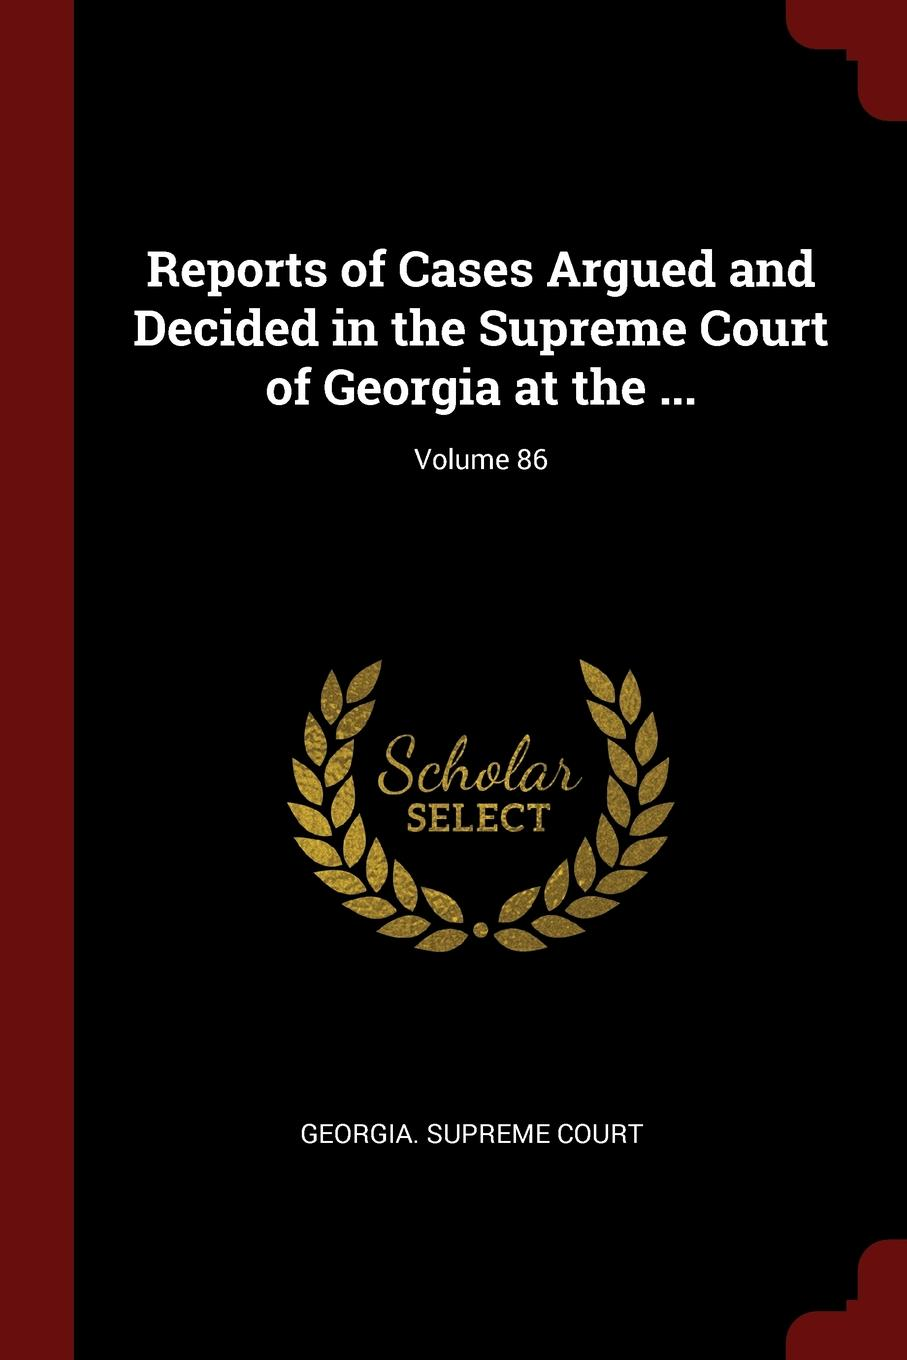 Reports of Cases Argued and Decided in the Supreme Court of Georgia at the ...; Volume 86